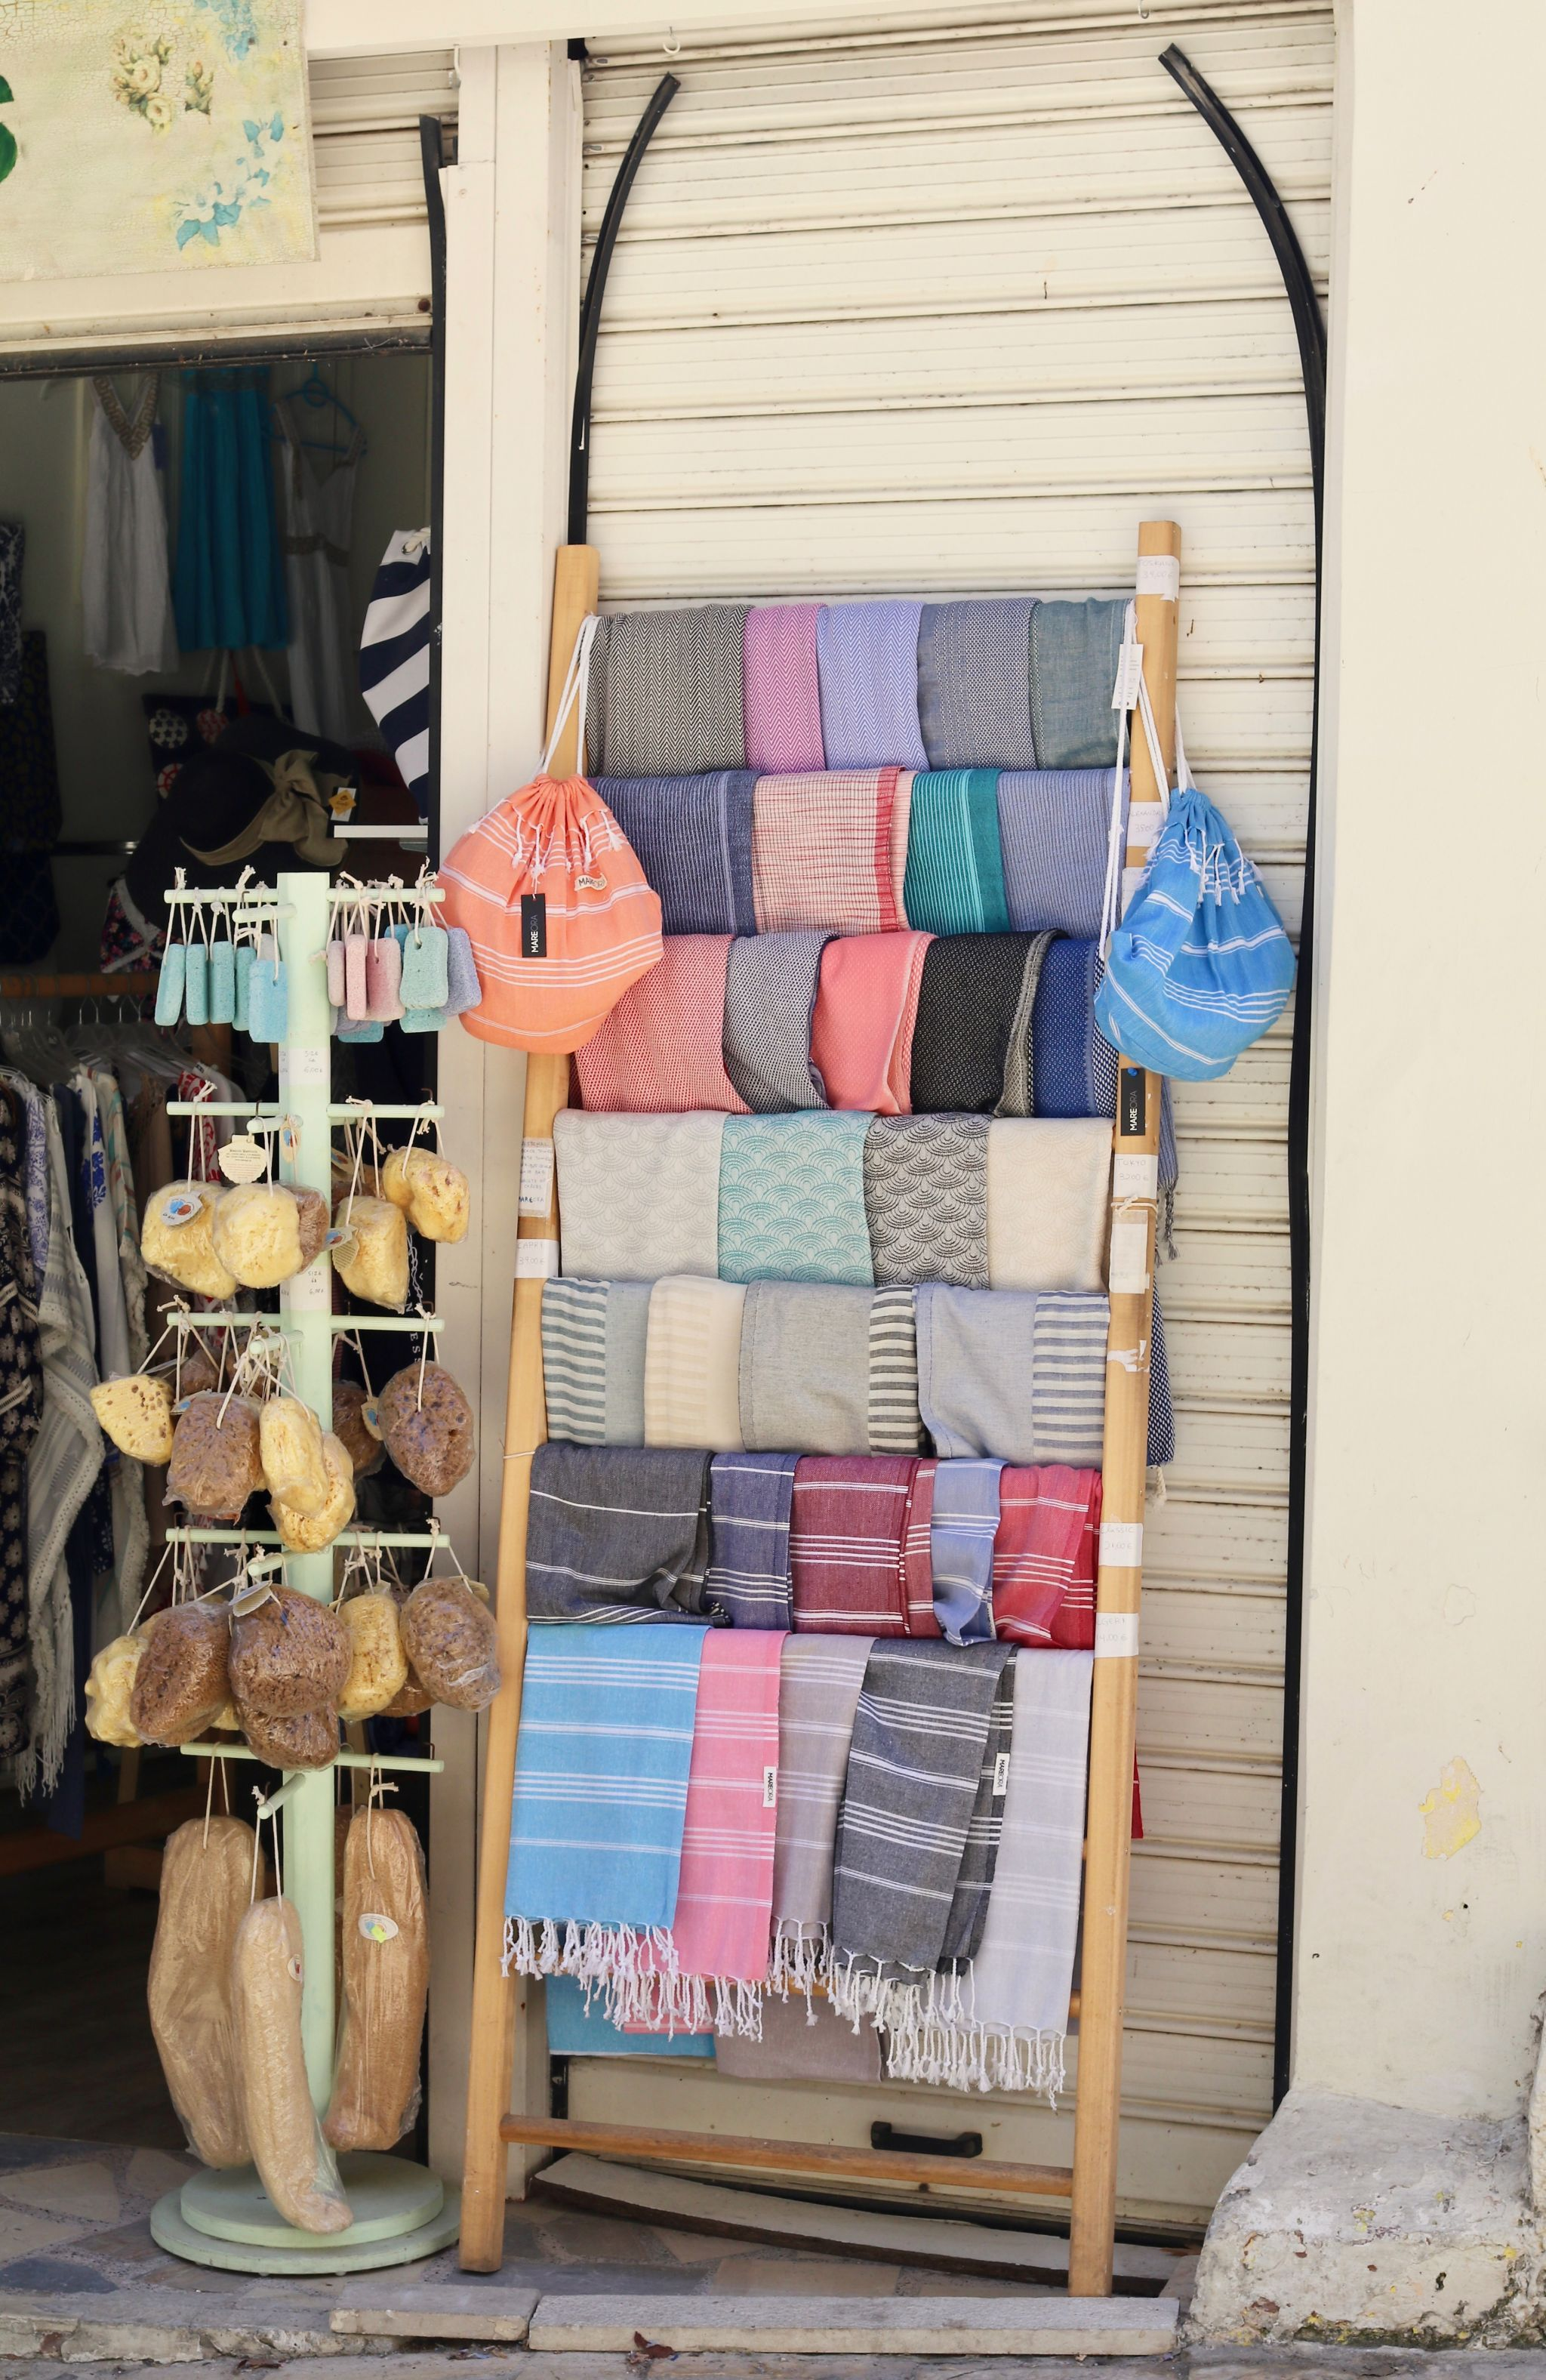 Bits and Bobs shop Kassiopi | Corfu travel guide